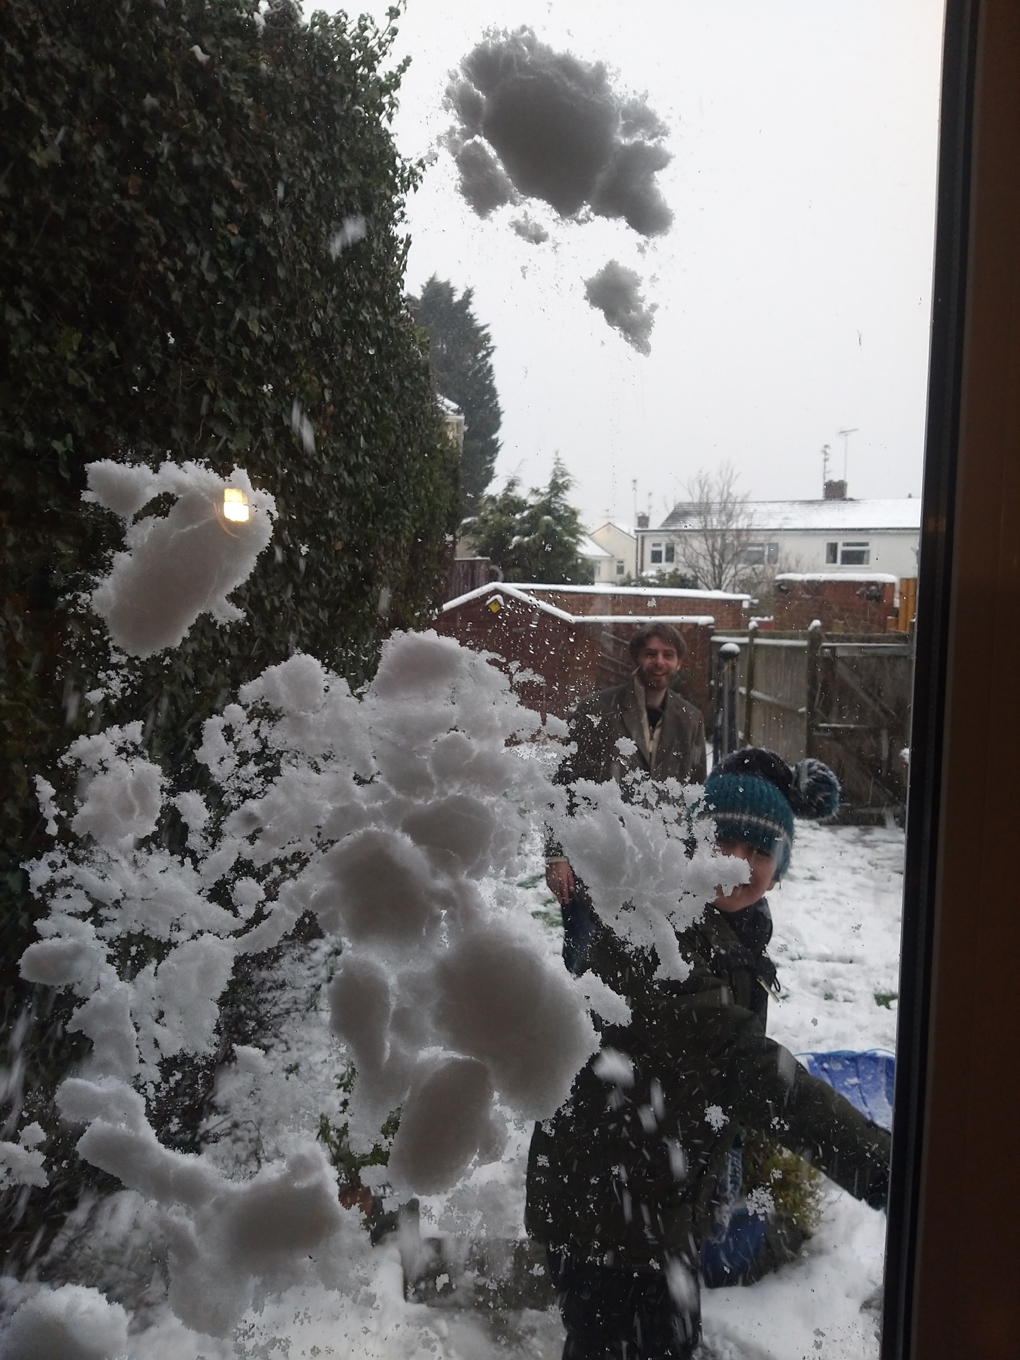 Snowball flattened across a window